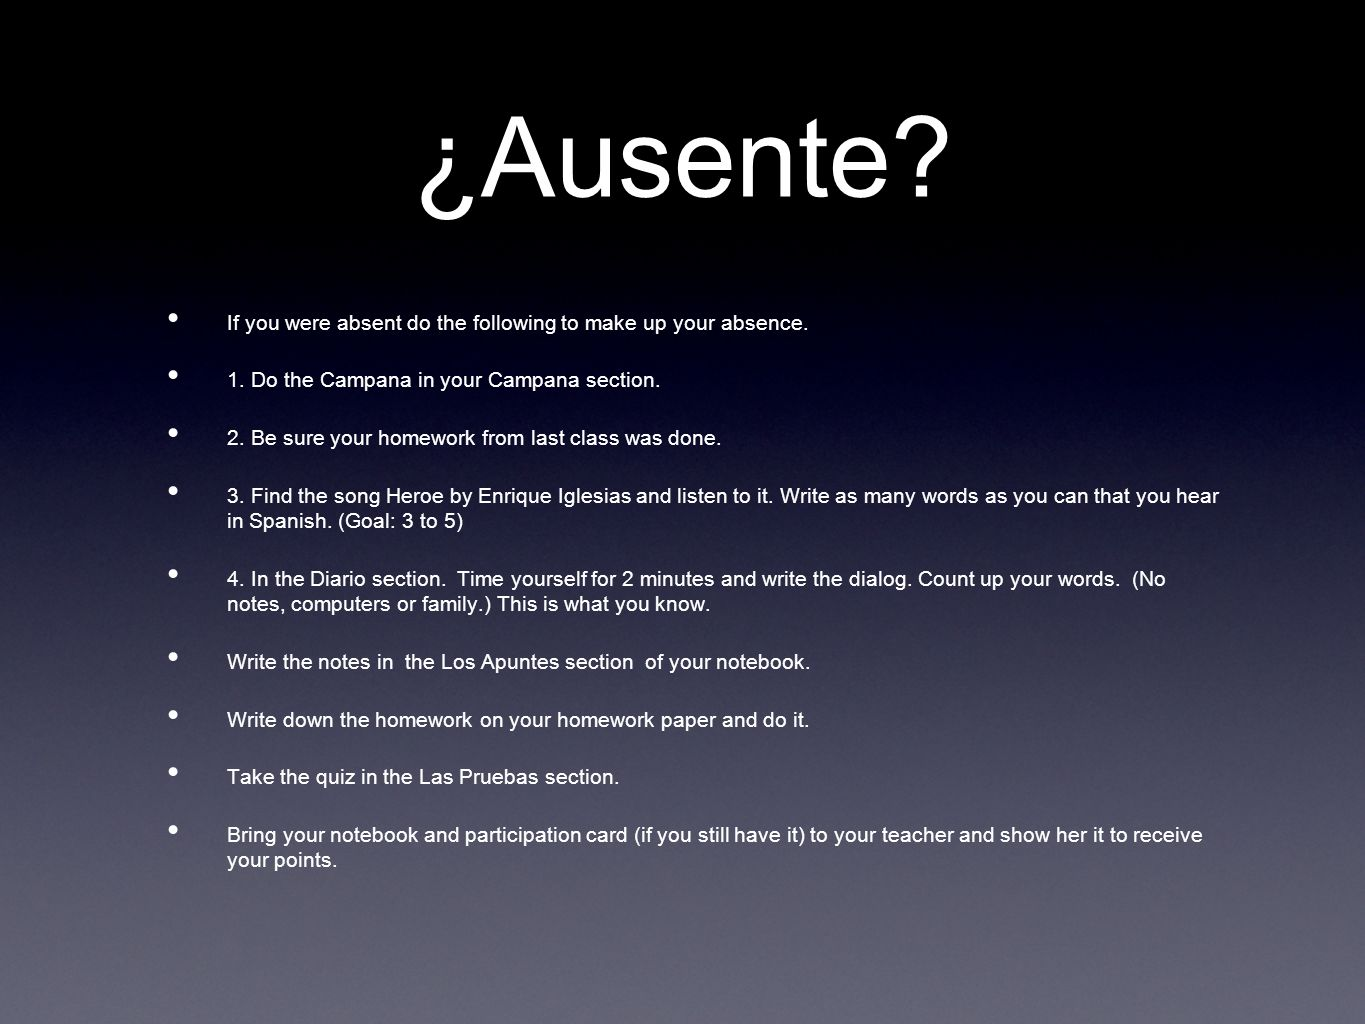 ¿Ausente? If you were absent do the following to make up your absence. 1. Do the Campana in your Campana section. 2. Be sure your homework from last c